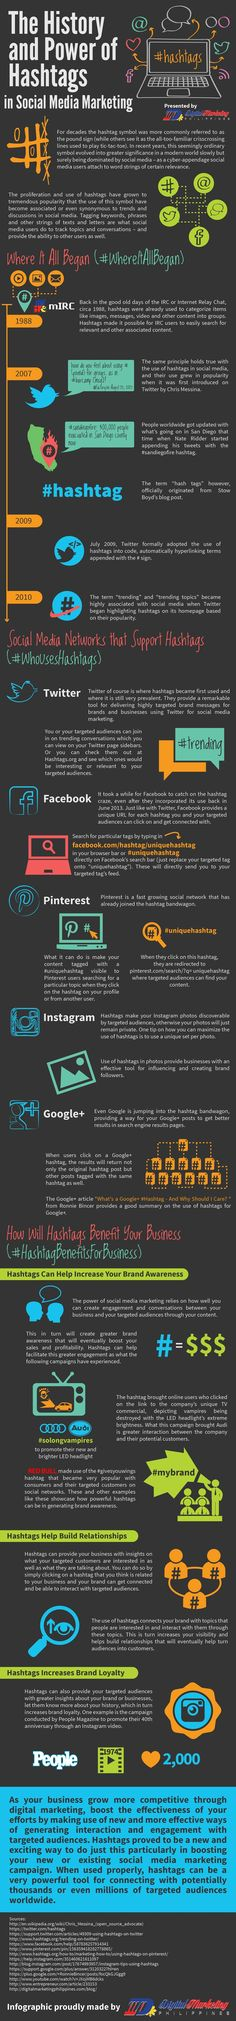 History of #hashtags in #Marketing #SocialMedia.